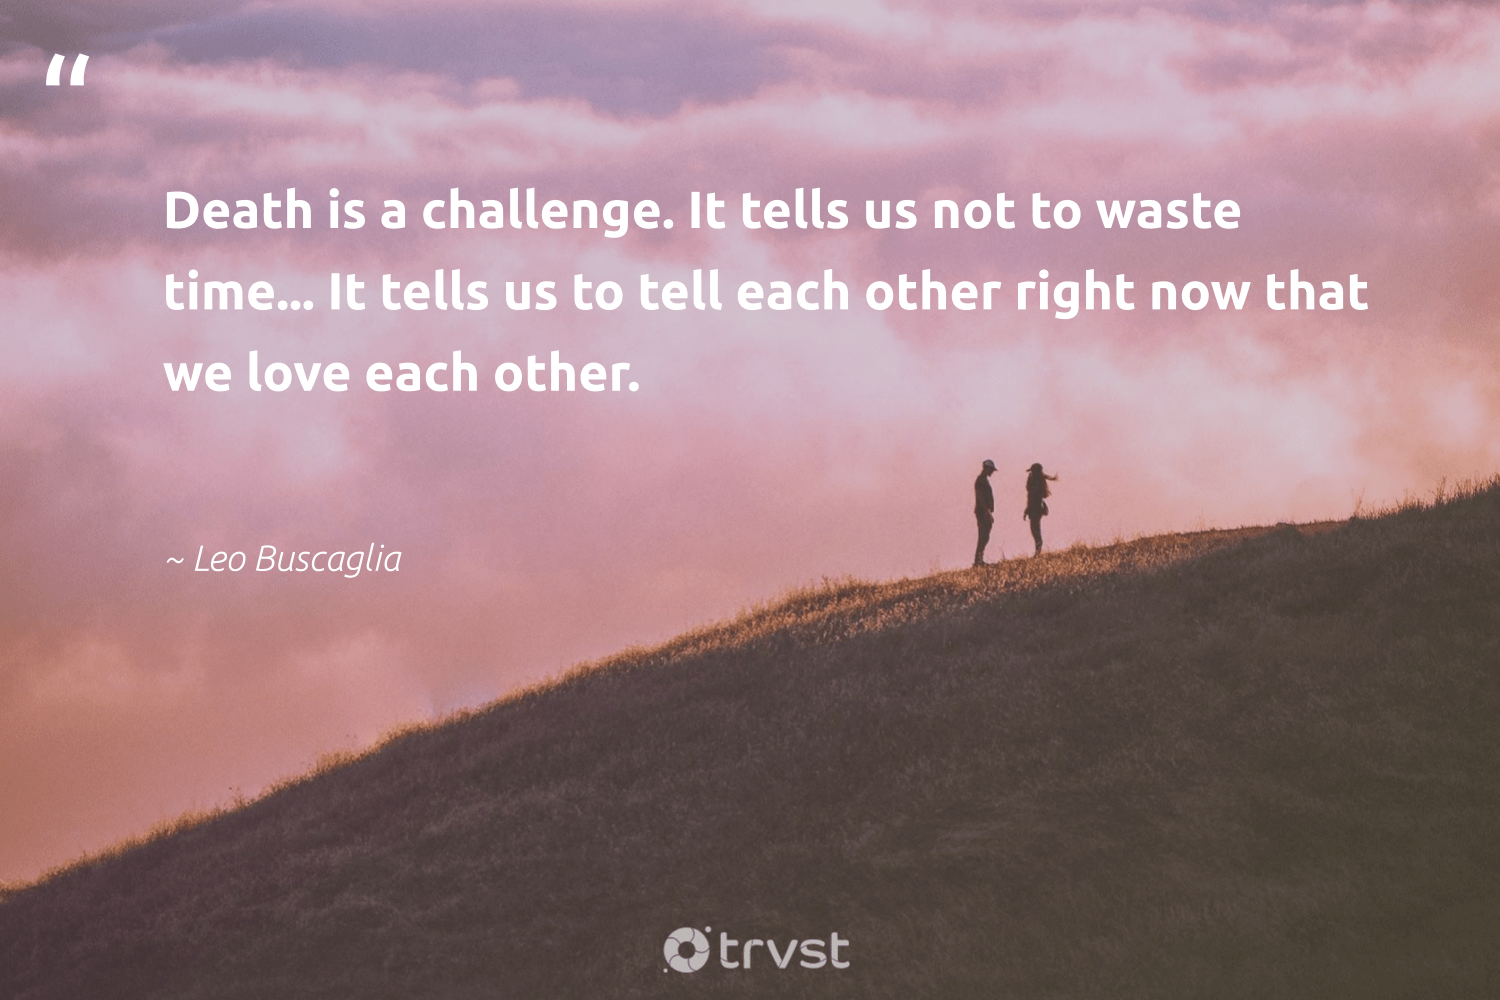 """Death is a challenge. It tells us not to waste time... It tells us to tell each other right now that we love each other.""  - Leo Buscaglia #trvst #quotes #love #waste #nevergiveup #socialimpact #begreat #takeaction #togetherwecan #gogreen #health #beinspired"